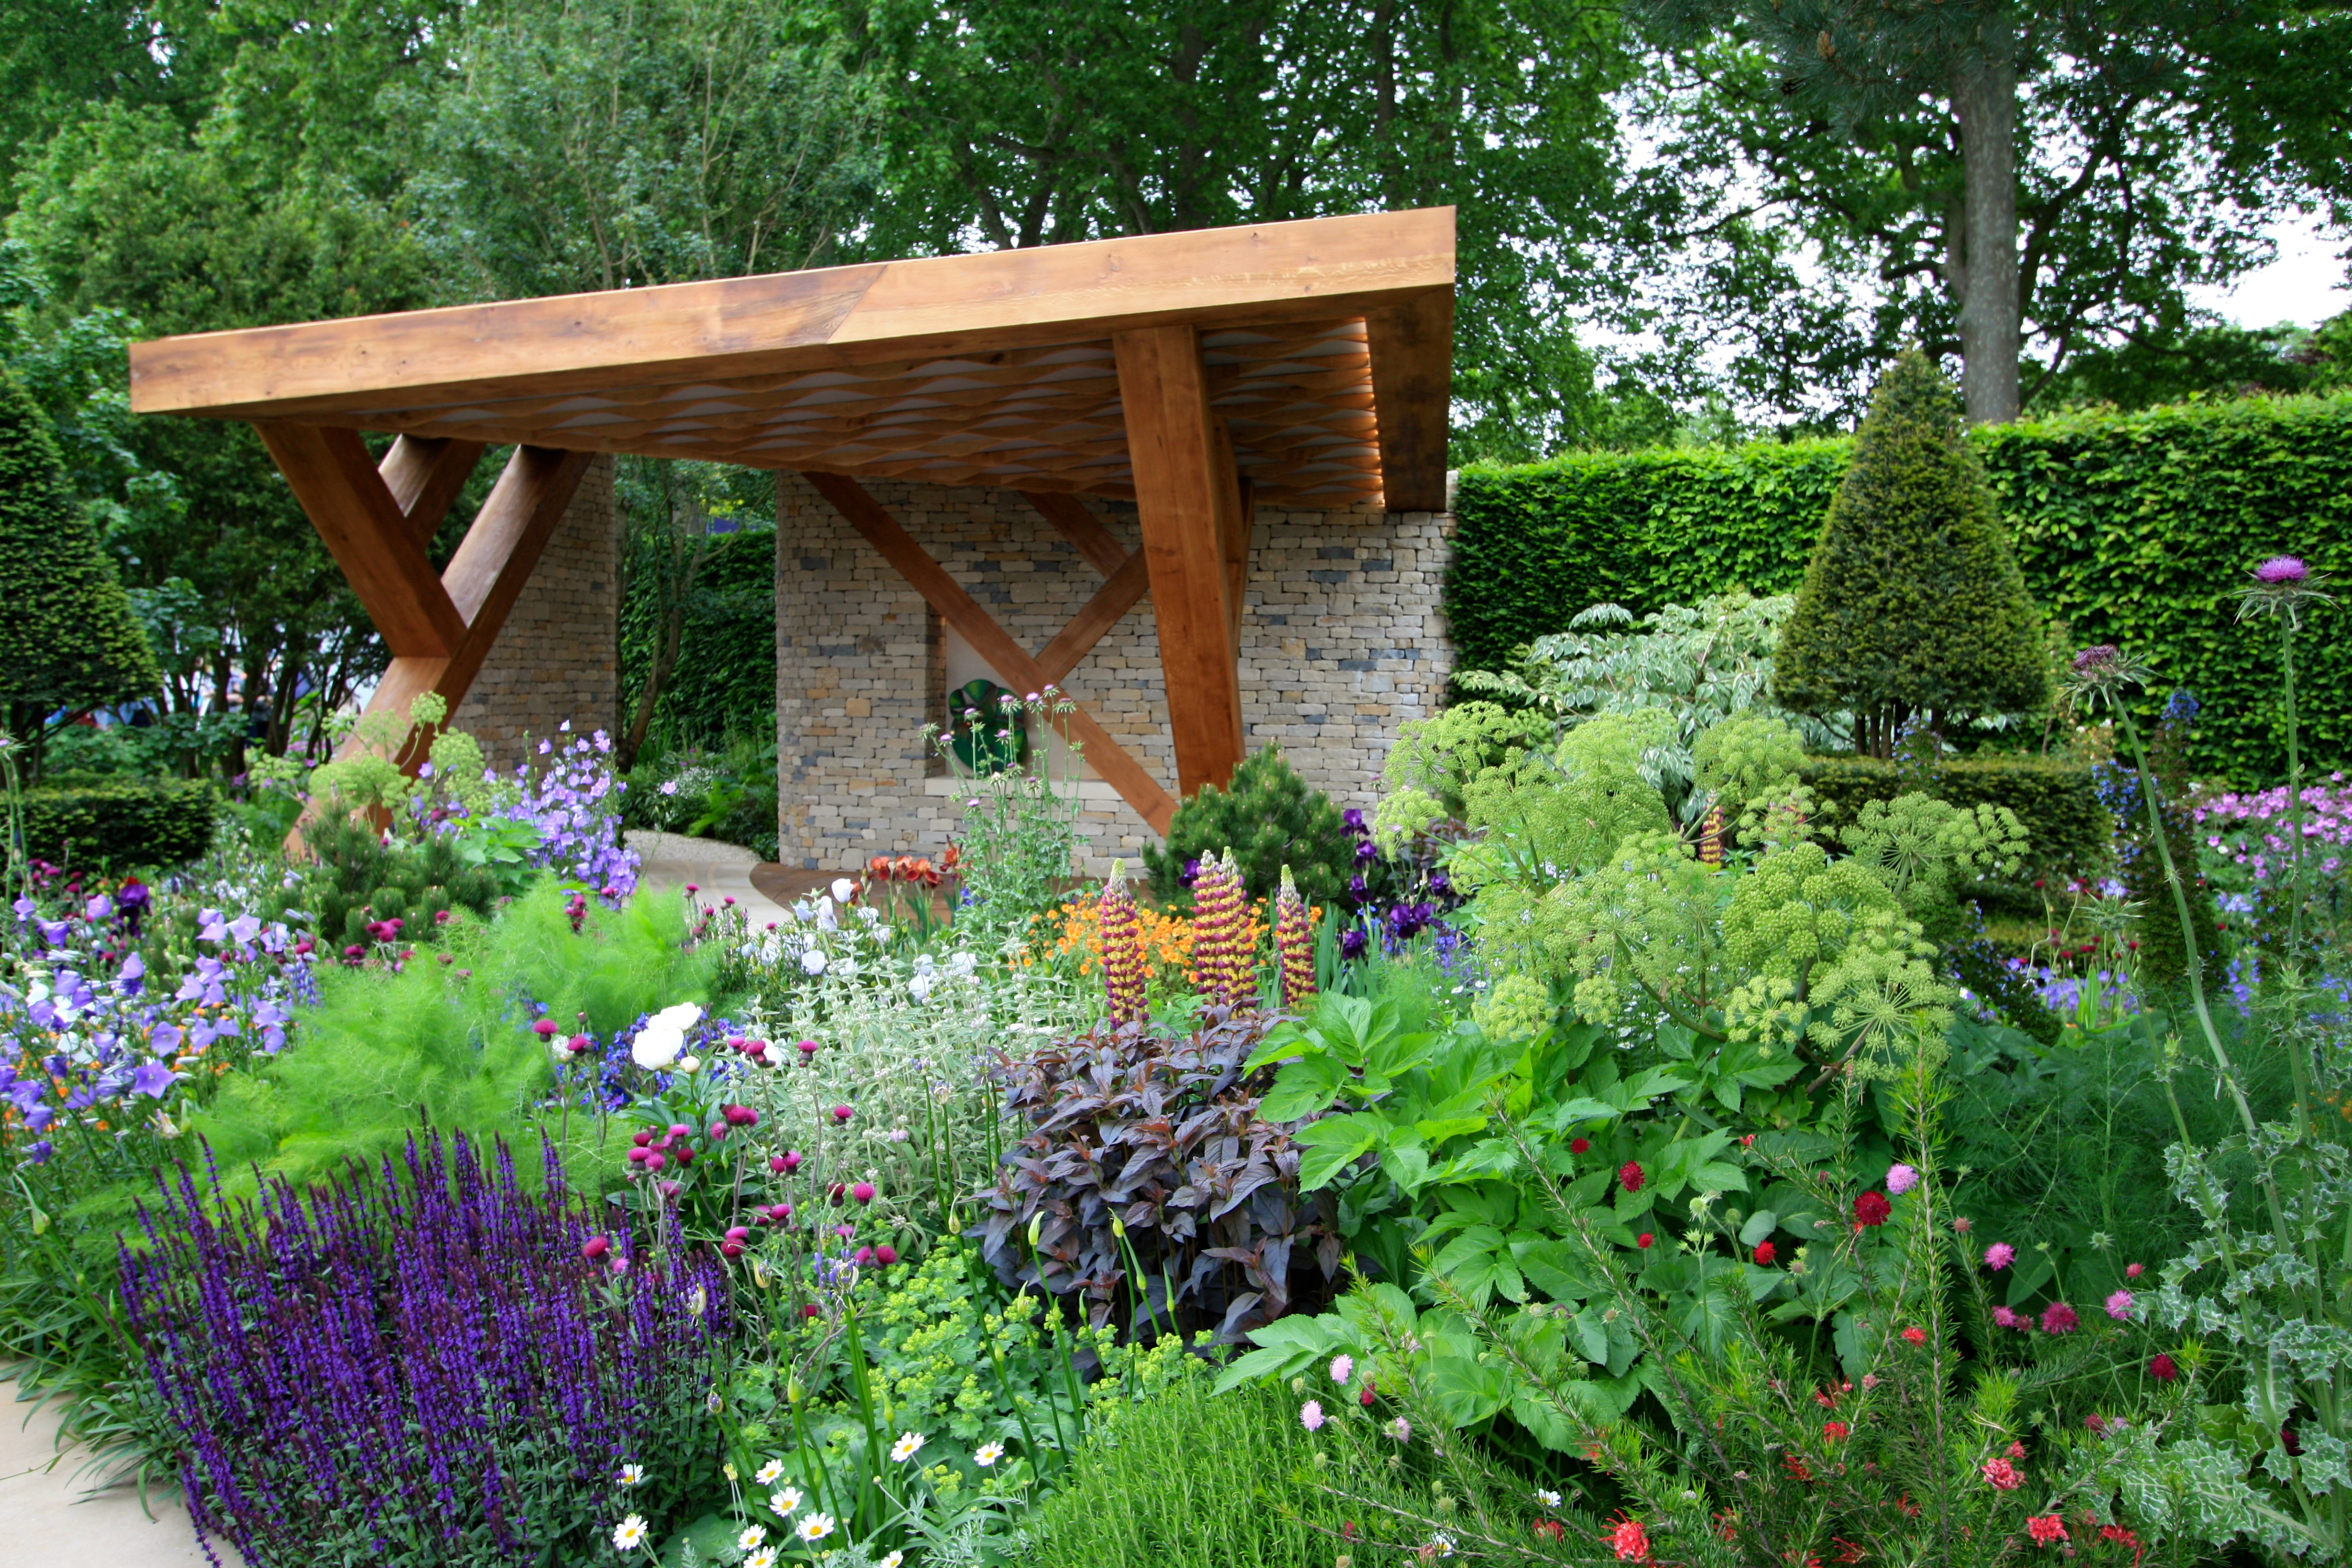 chelsea flower show 2016-2017: the morgan stanley gardens – the